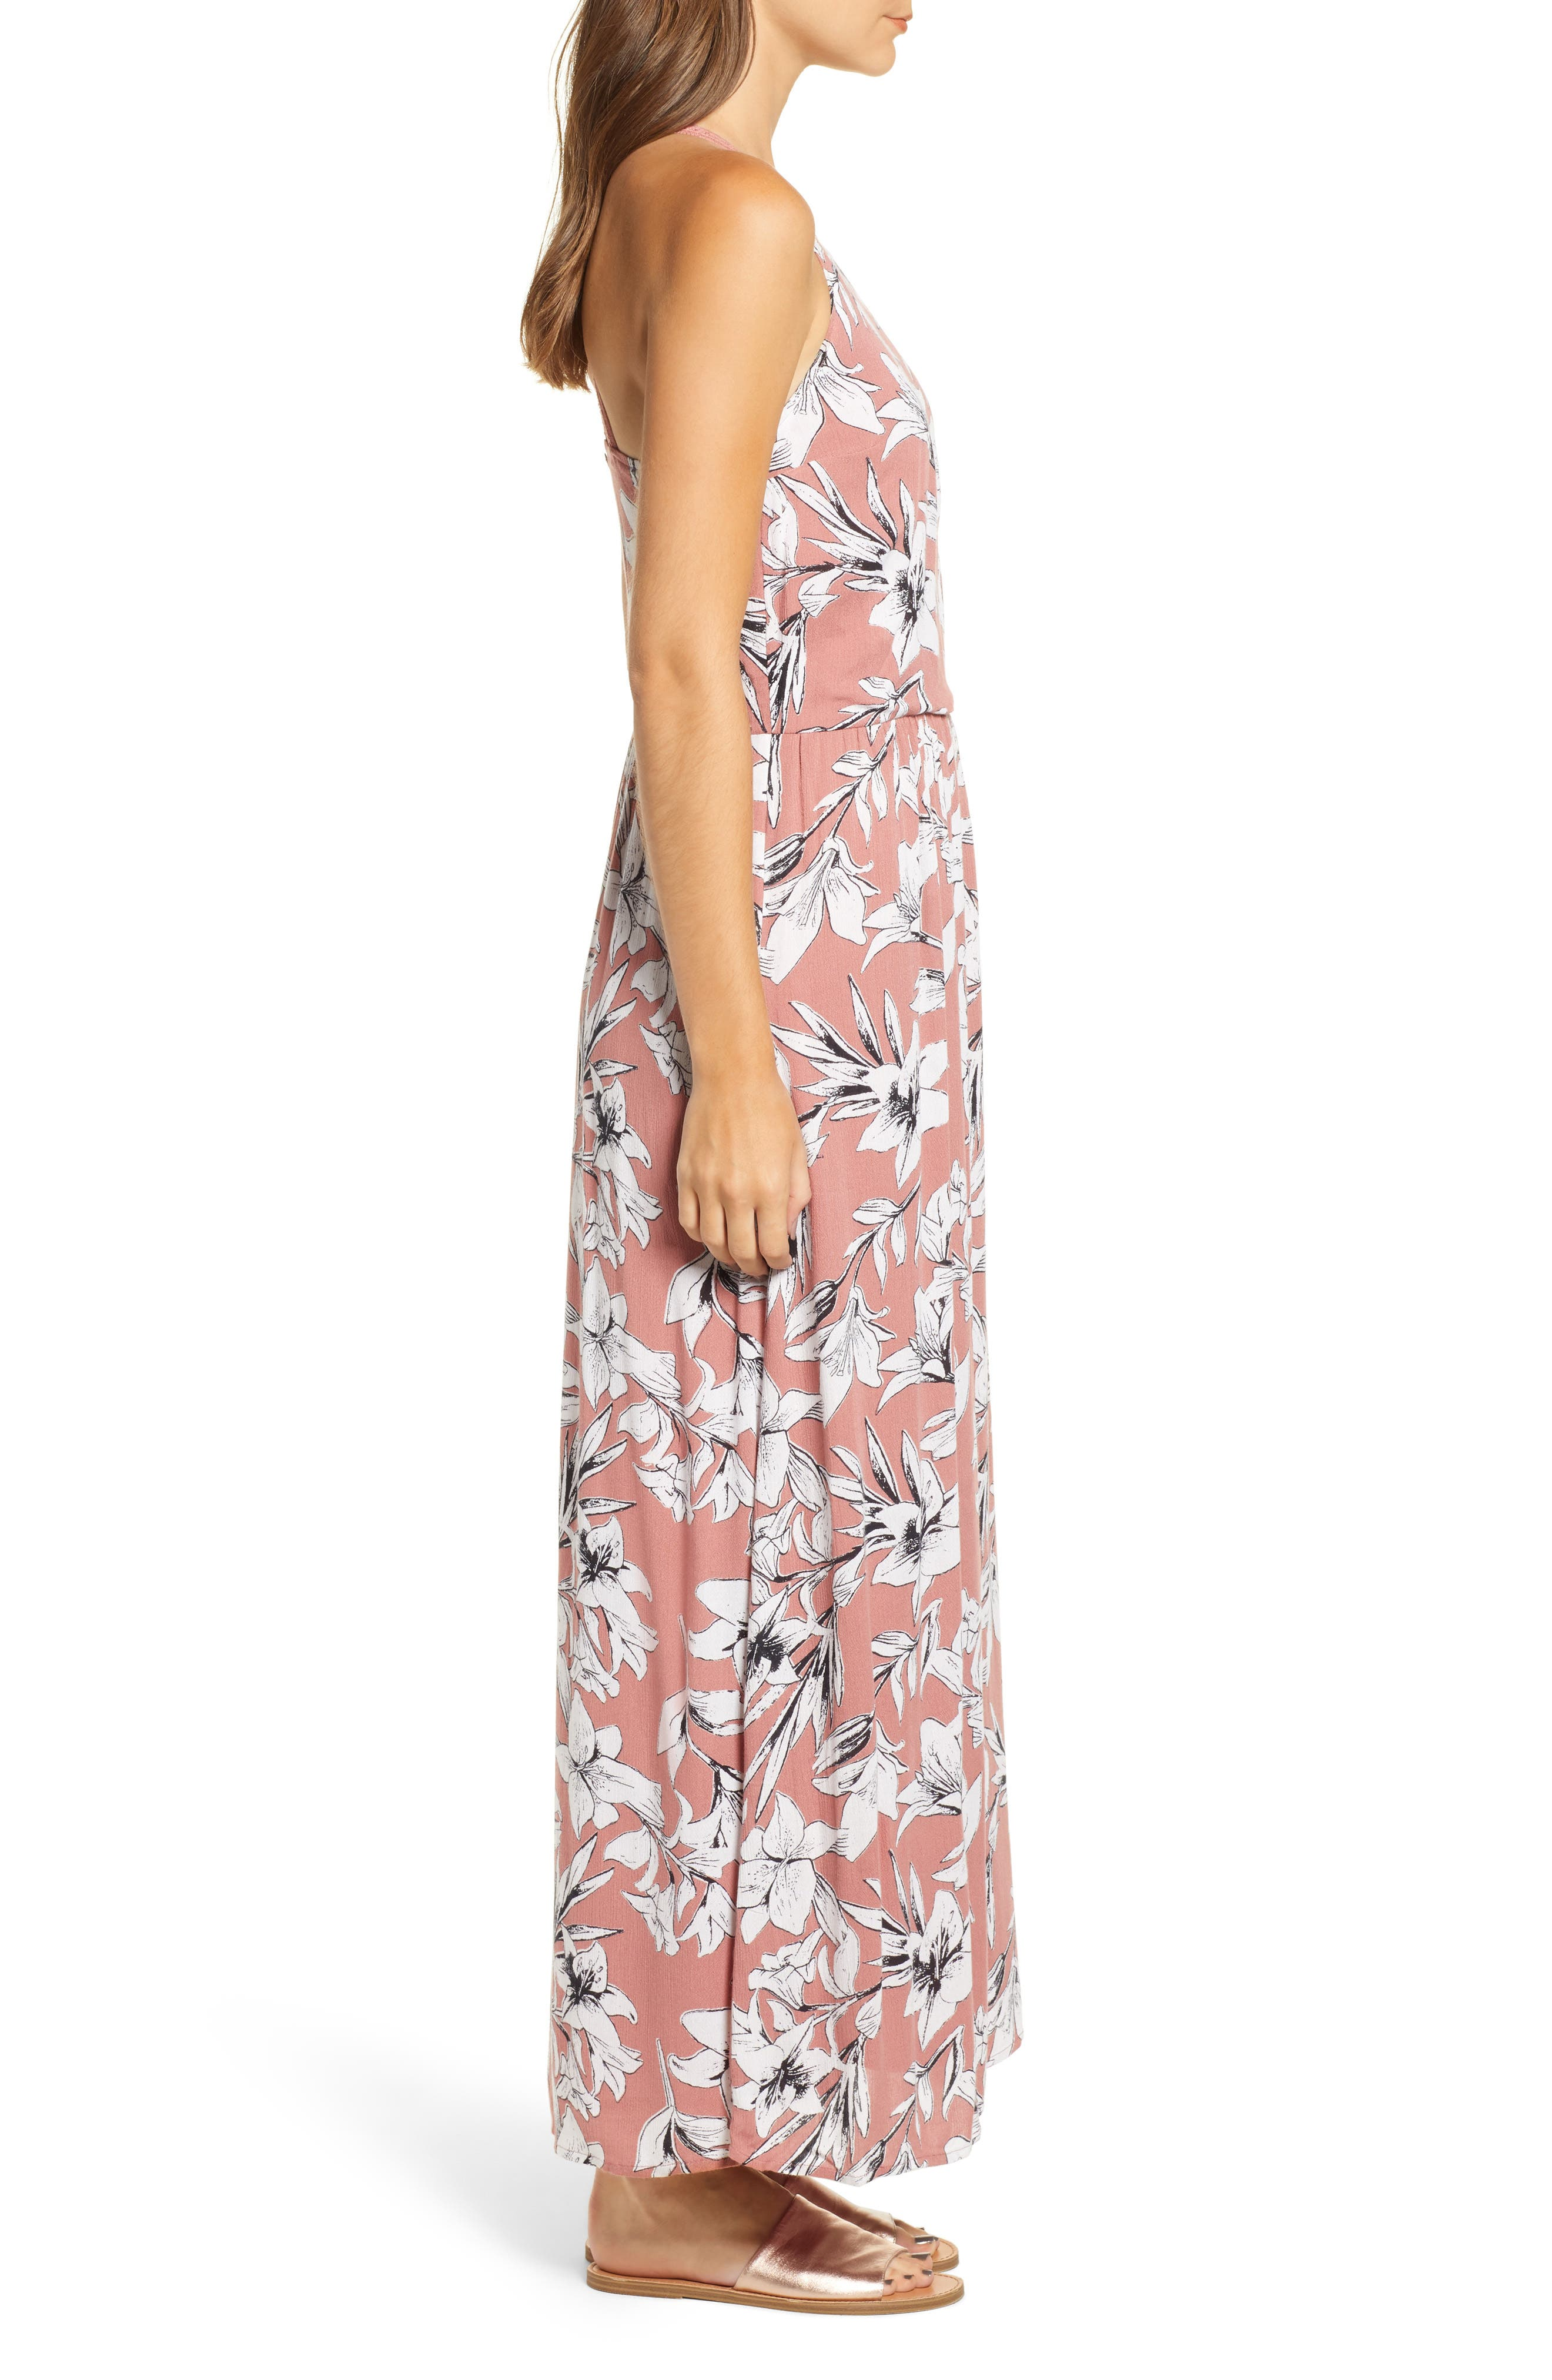 Pavement Border Maxi Dress,                             Alternate thumbnail 3, color,                             WITHERED ROSE LILY HOUSE